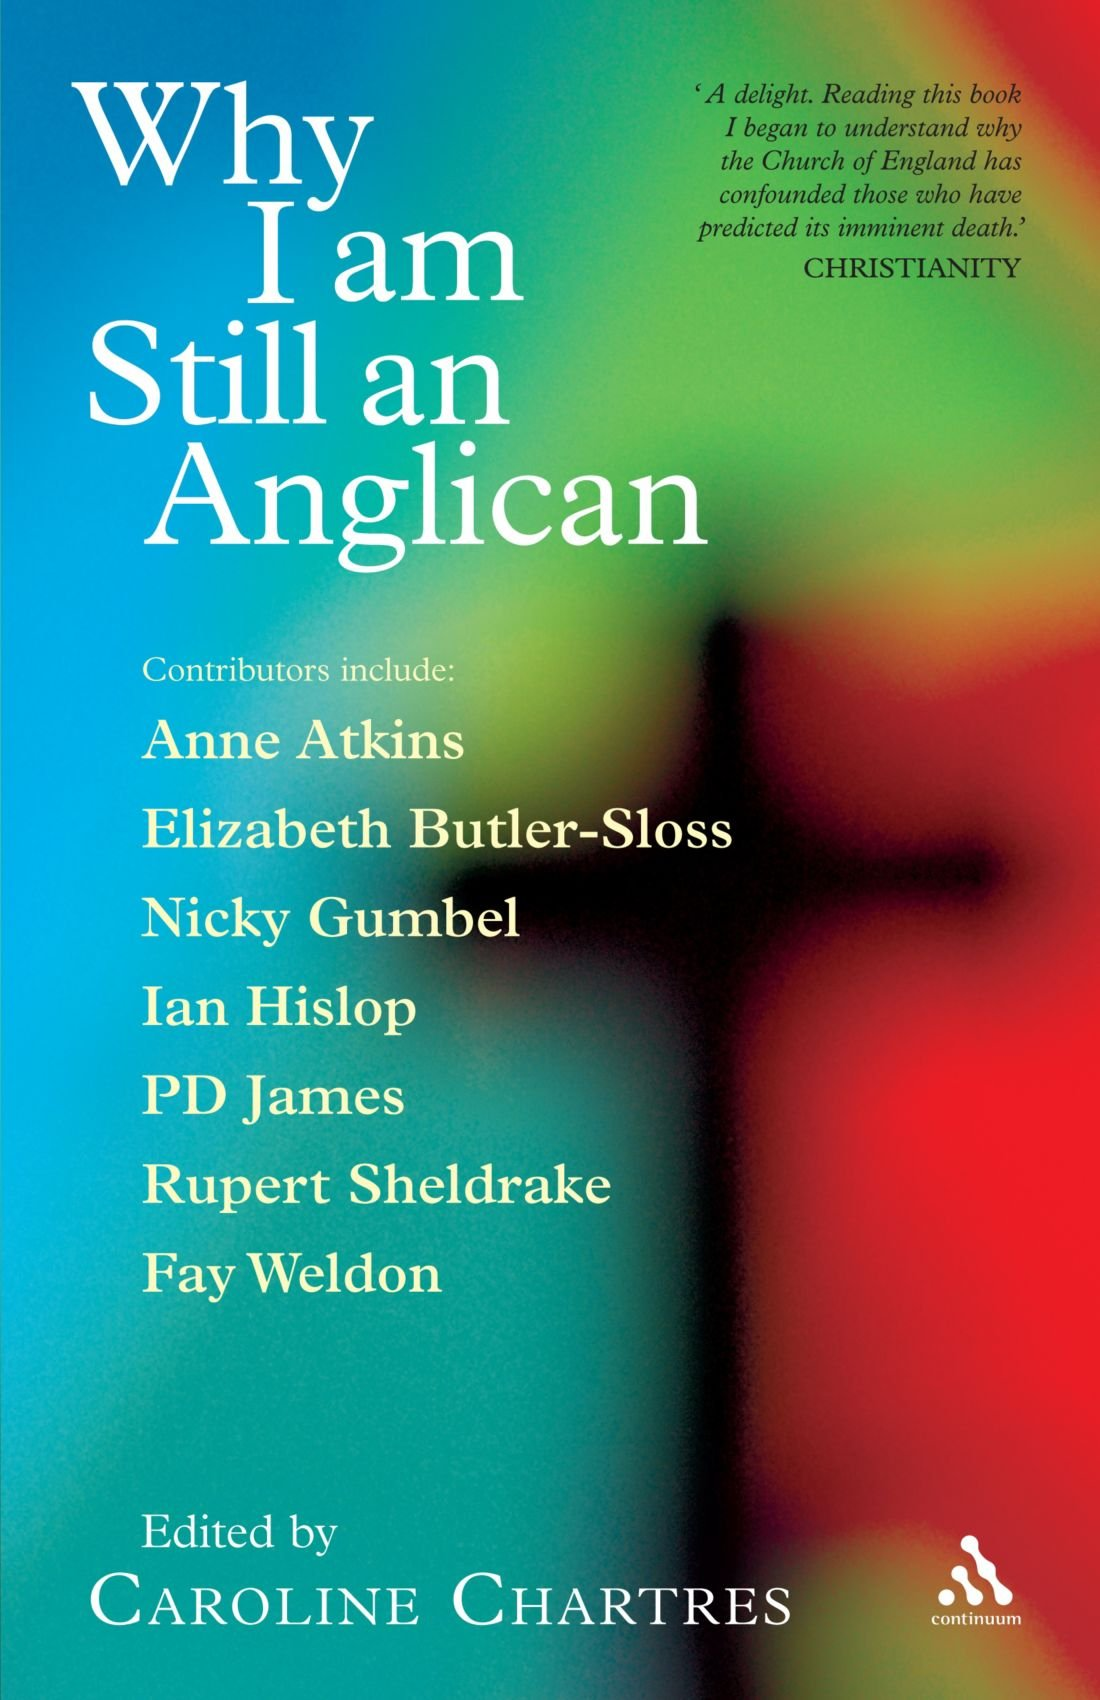 why i am still a catholic essays in faith and perseverance why i am still an anglican essays and conversations